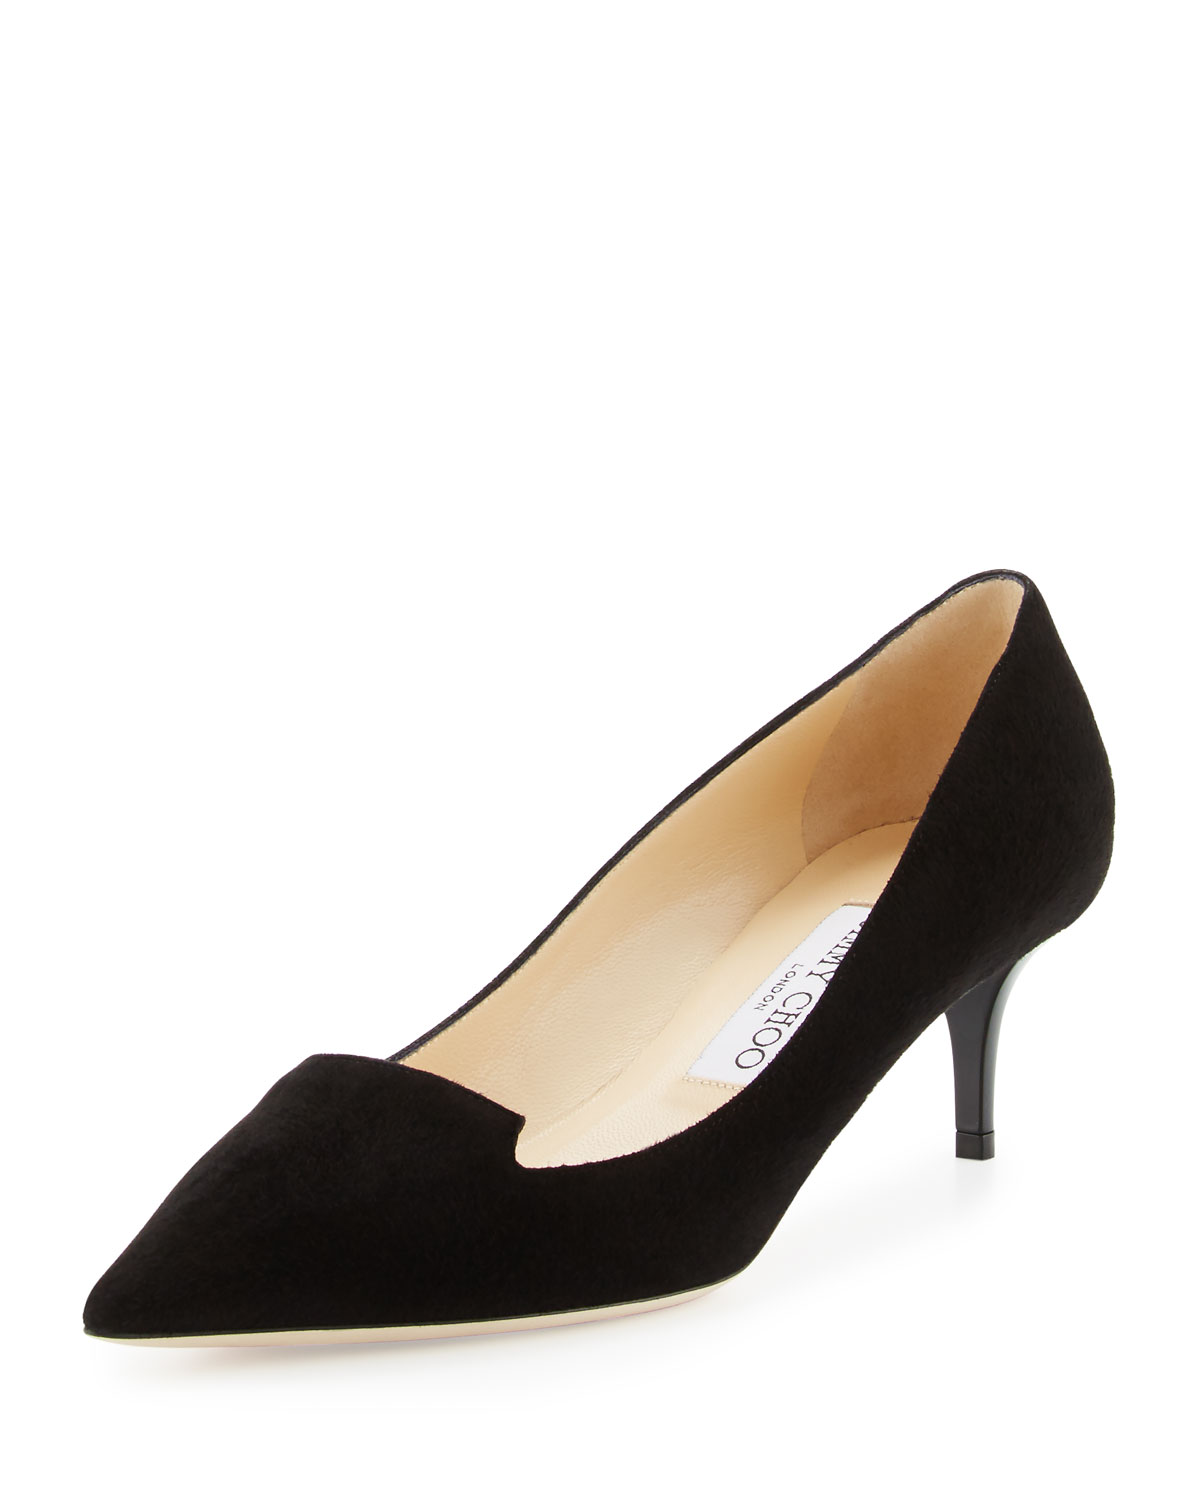 5567c1d6fb67 Jimmy Choo Allure Suede Pointed-Toe Loafer Pump